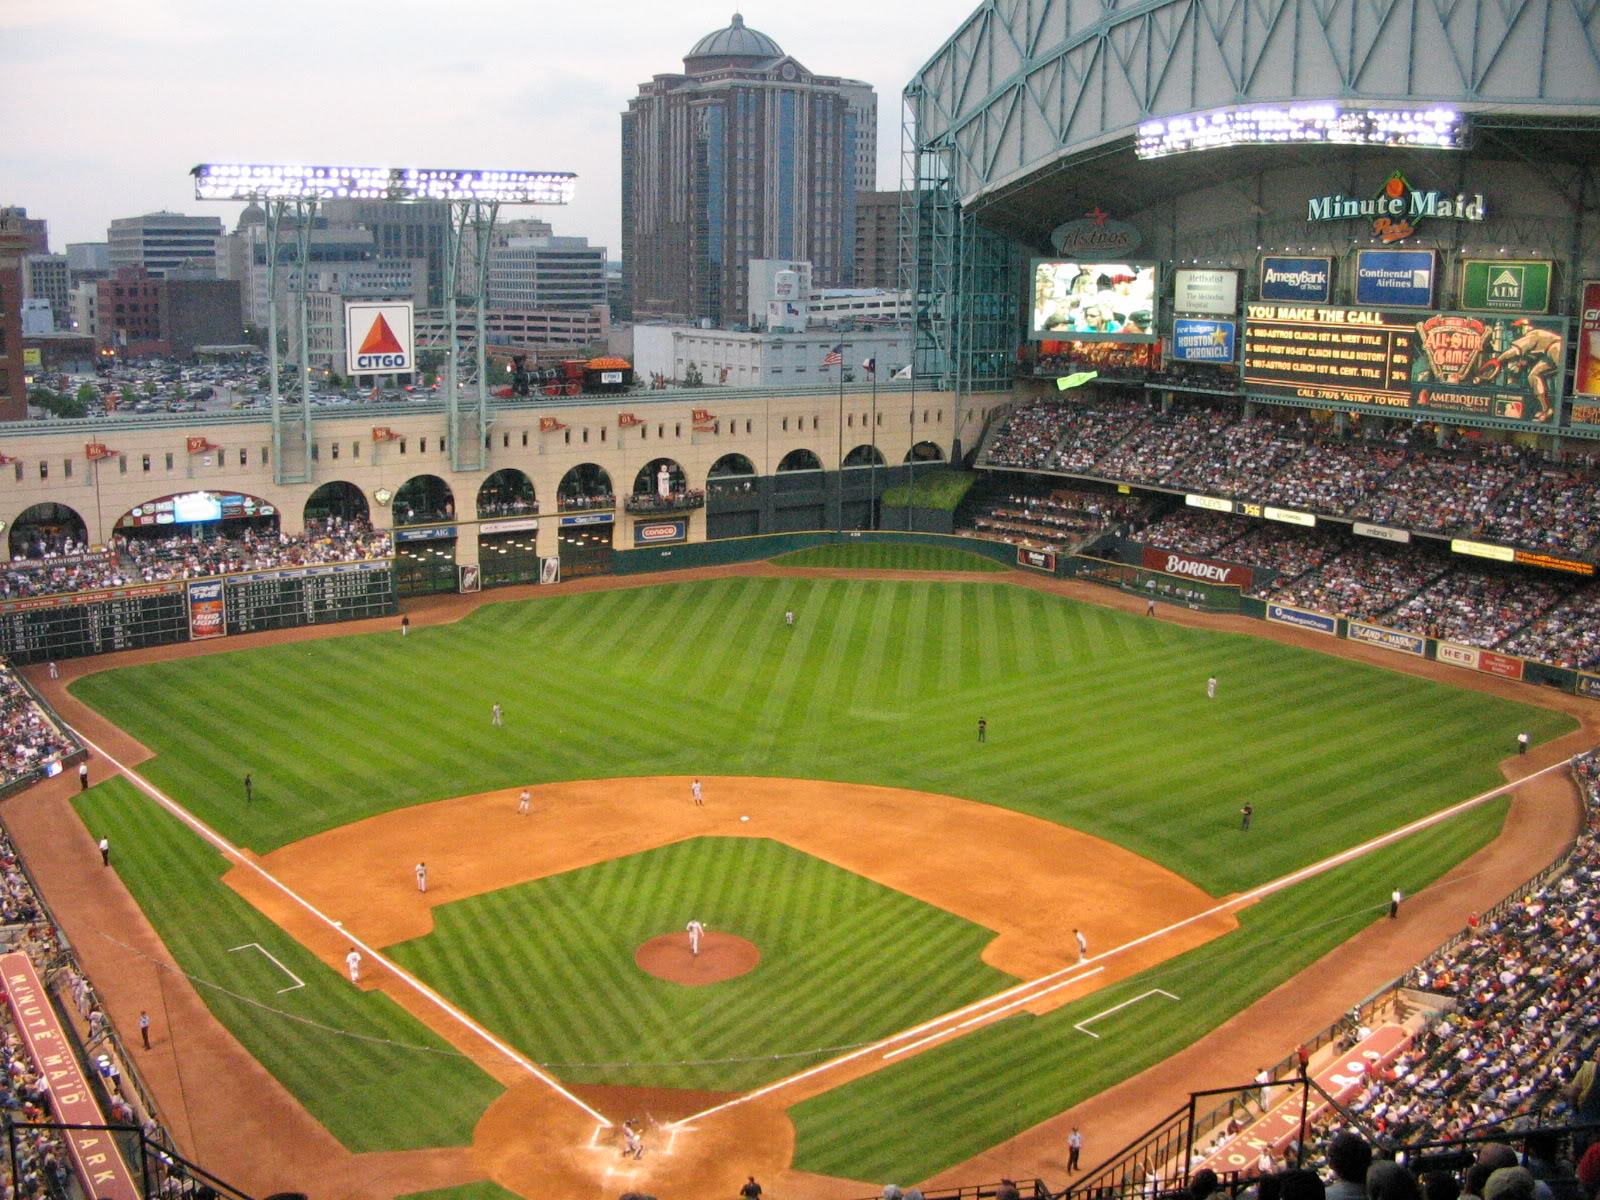 minute maid park houston,texas